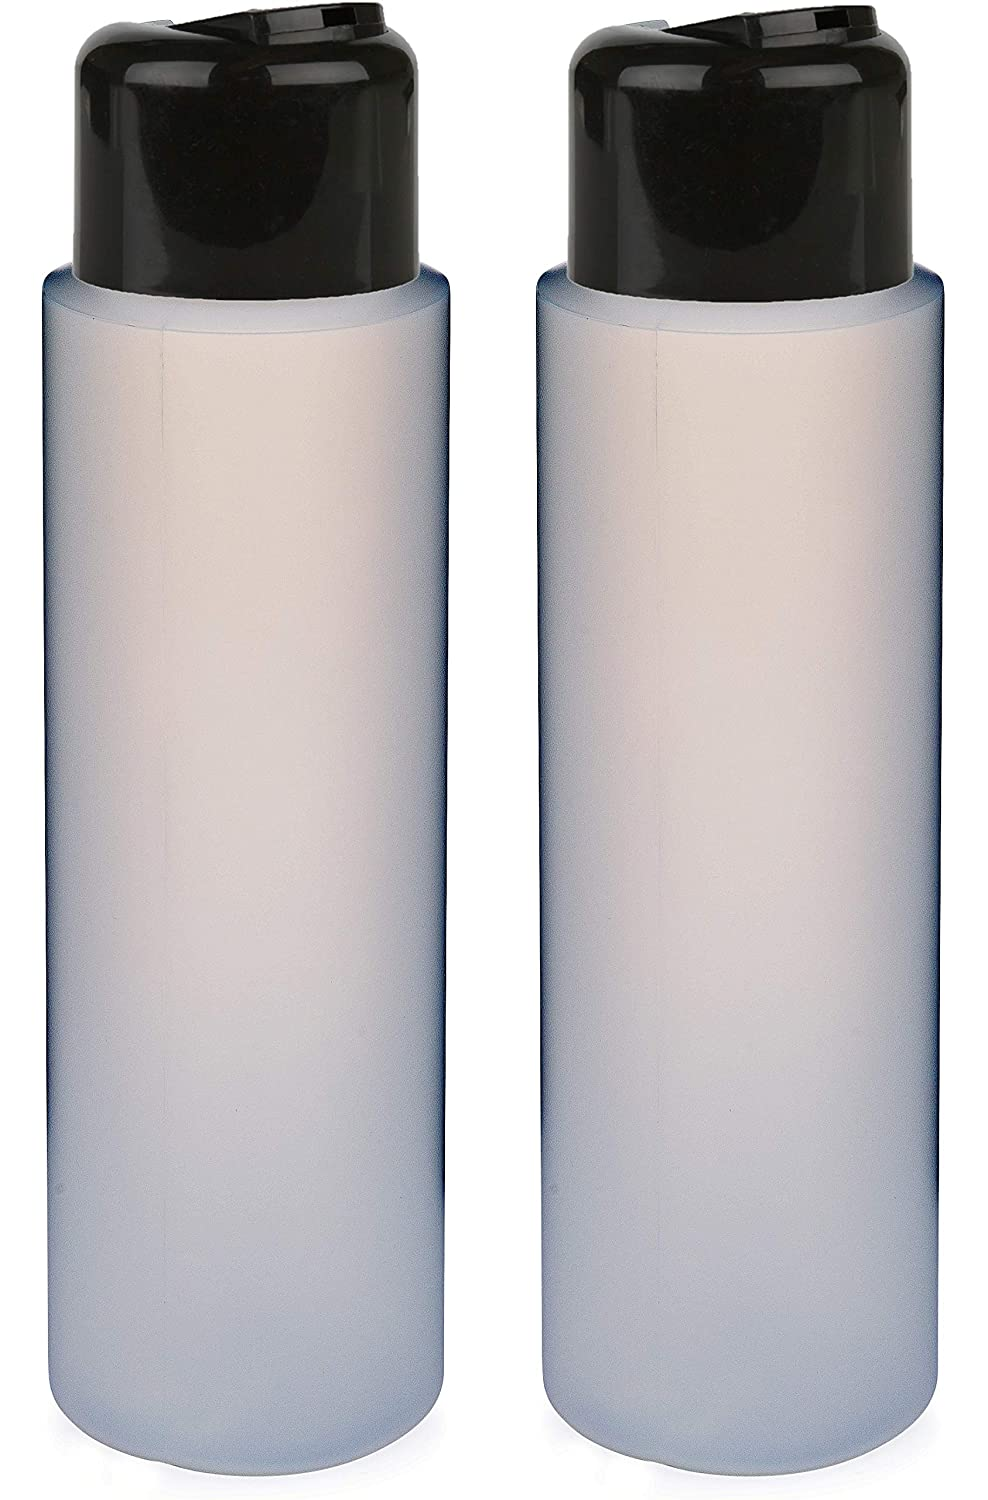 2 Pack Refillable 16 Ounce HDPE Squeeze Bottles With Stand On The Cap Dispenser Tops–Great For Lotions, Shampoos, Conditioners and Massage Oils From Earth s Essentials BLACK CAP